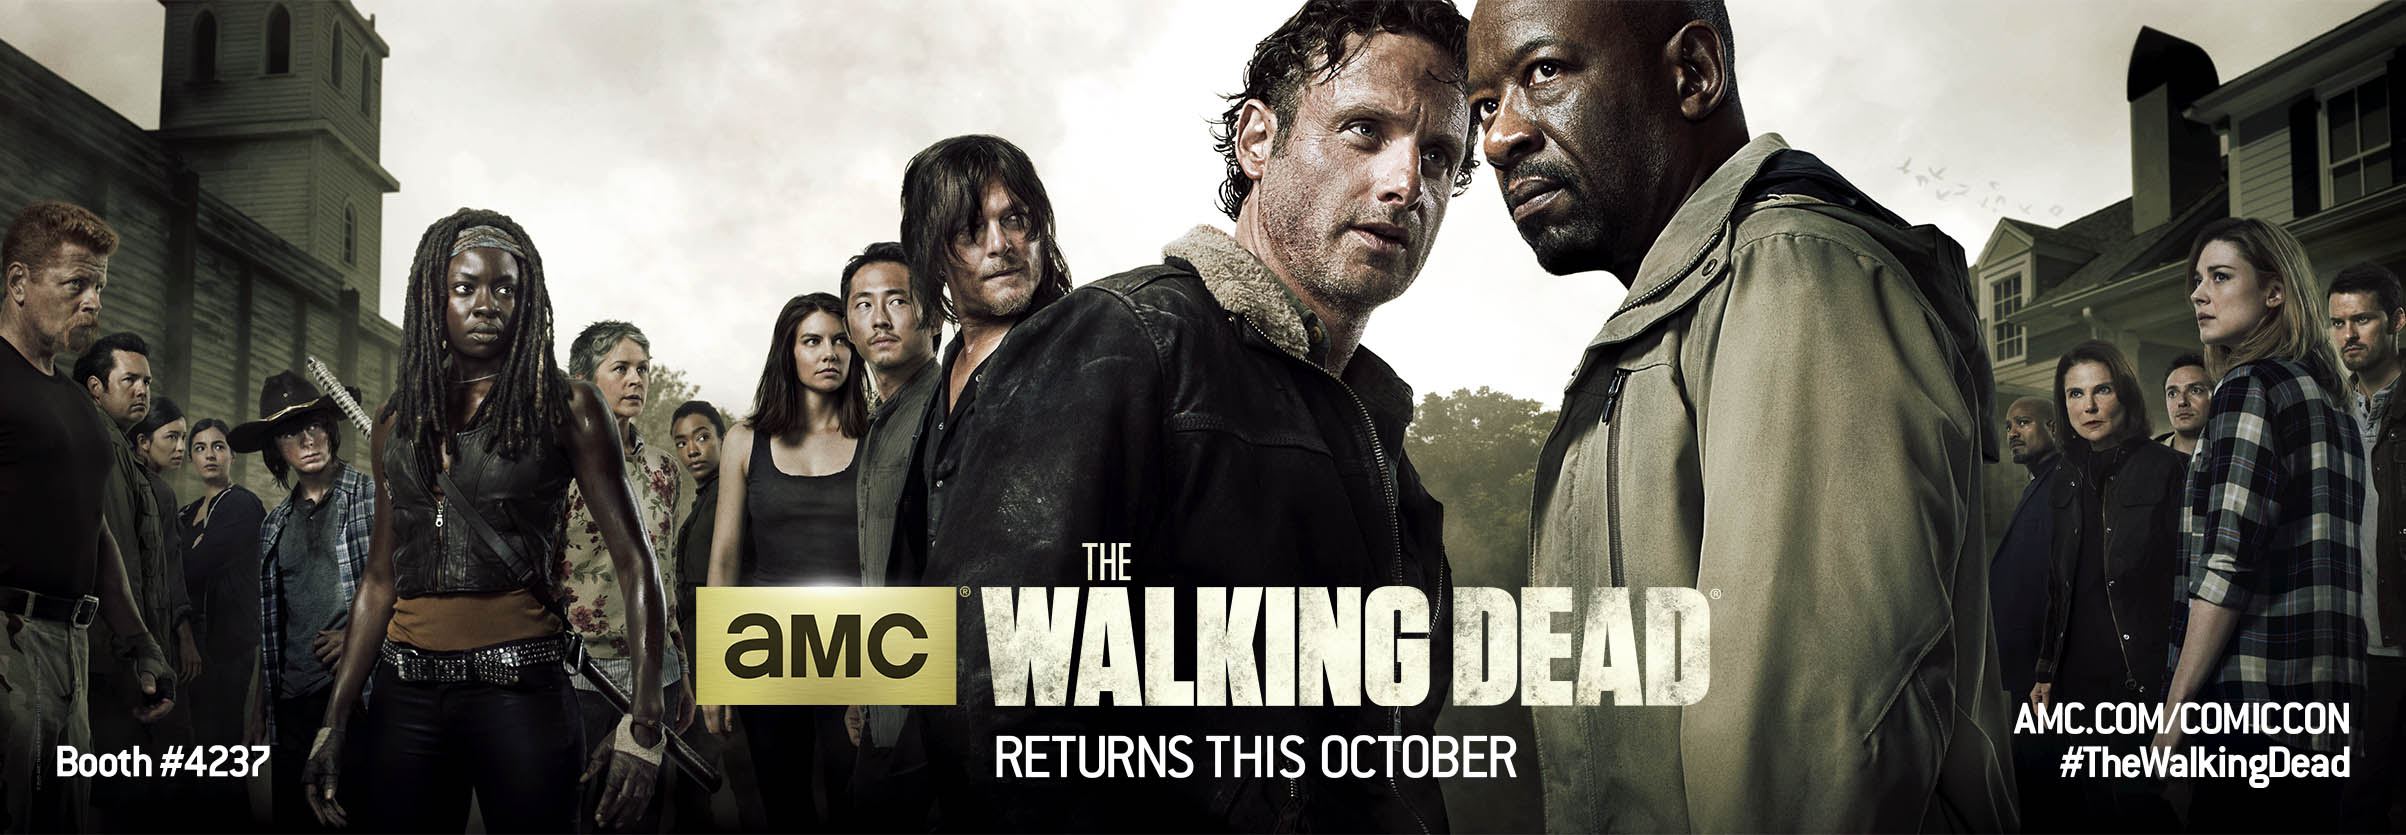 TheWalkingDeadSeason6 Poster for ComicCon